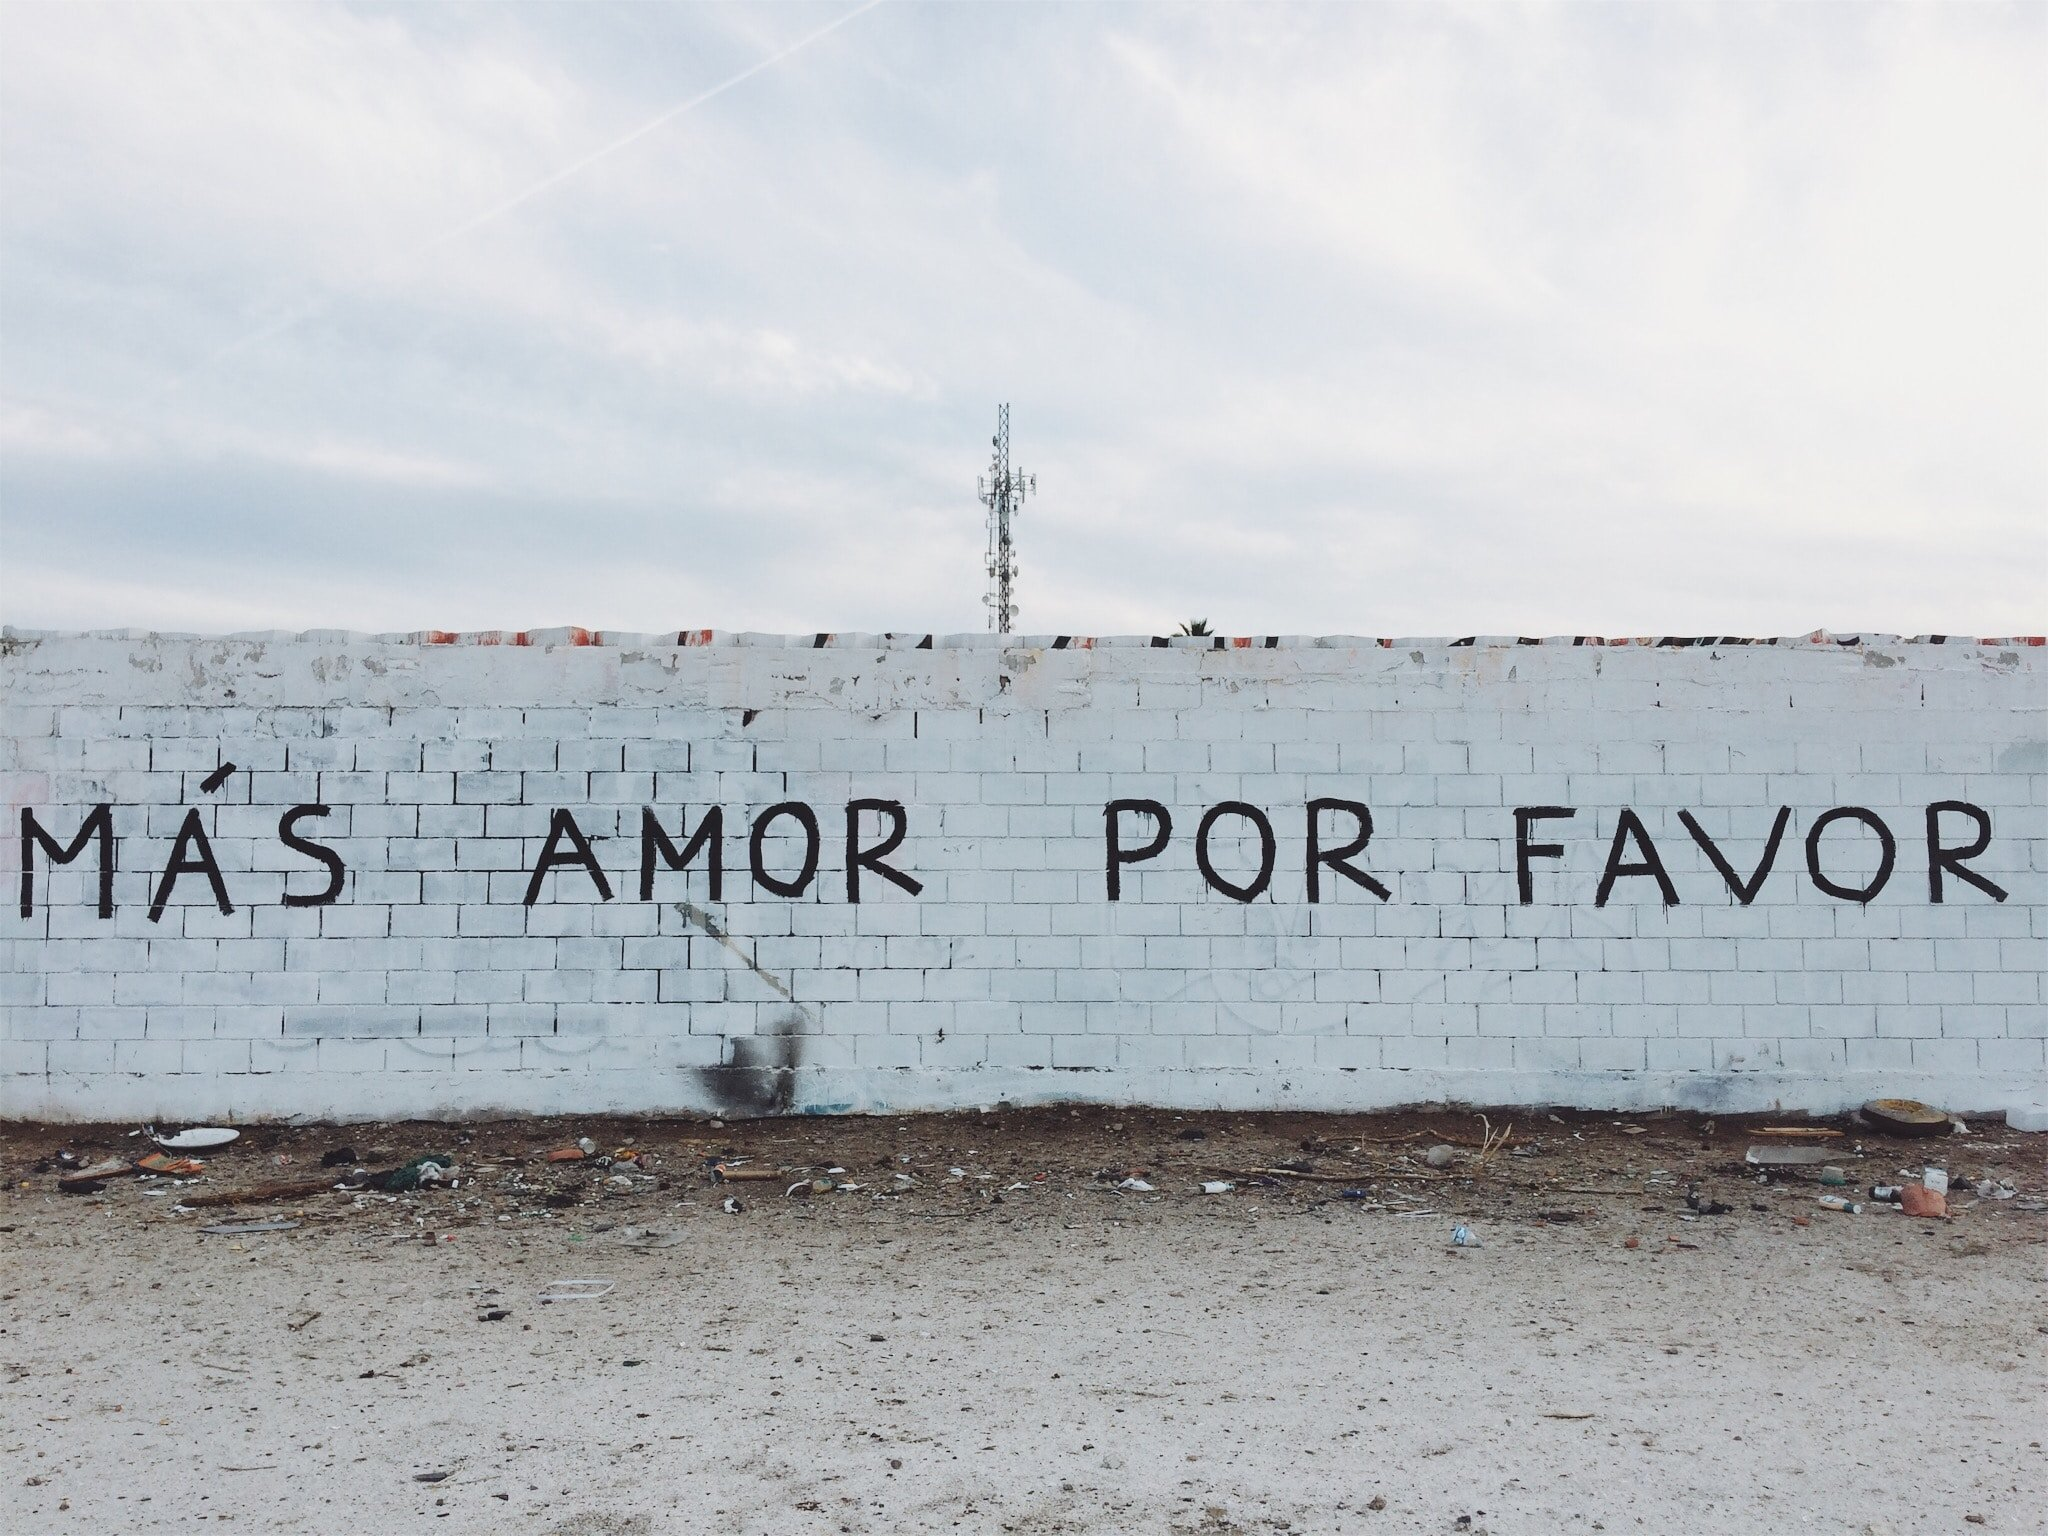 Mas Amor Por Favor graffiti